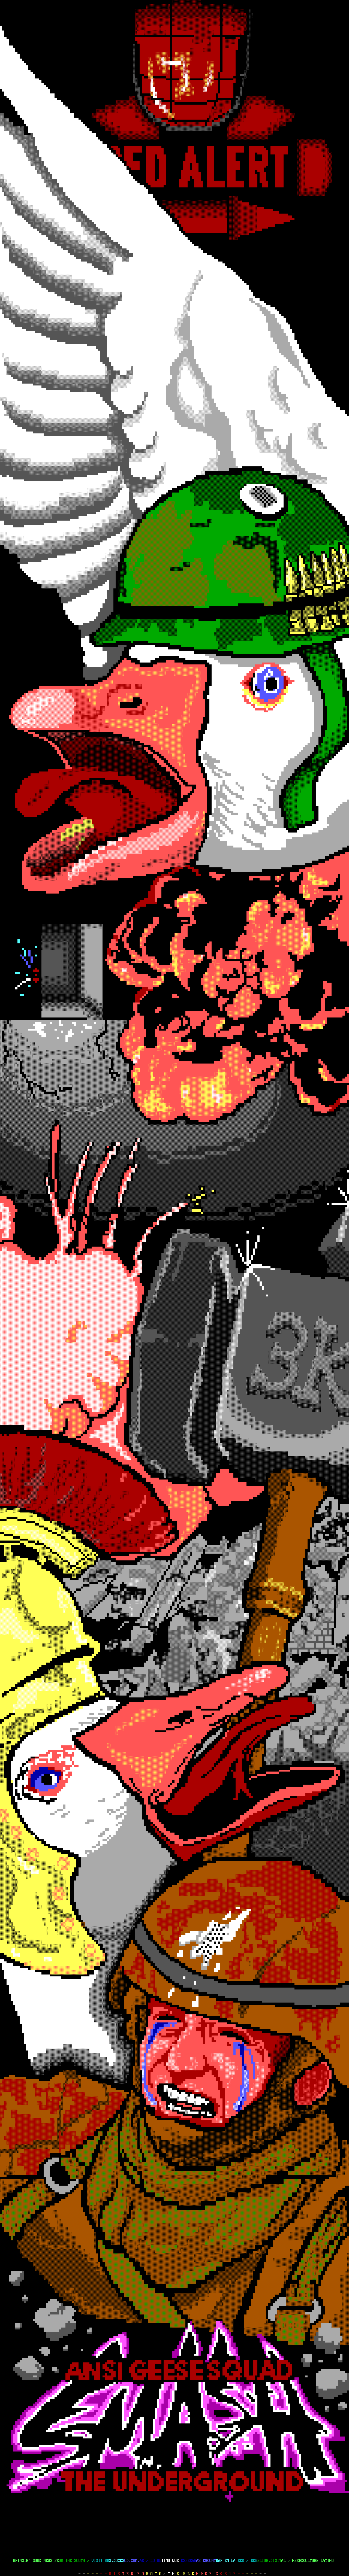 ANSI Geese Squad SMASH the Undergro by Mister Roboto